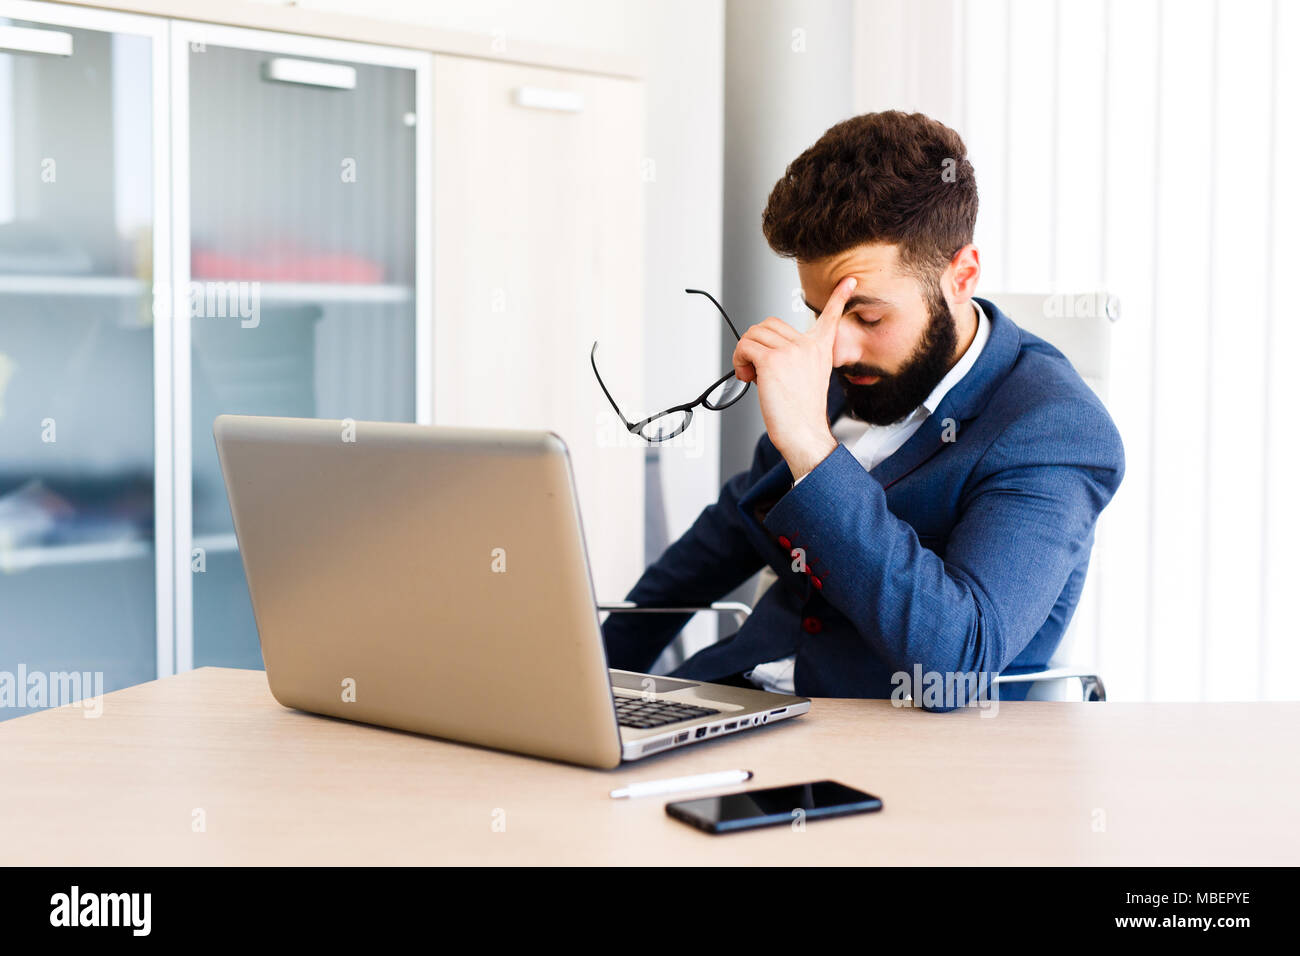 Young Businessman Has Stressful Day At Work - Stock Image